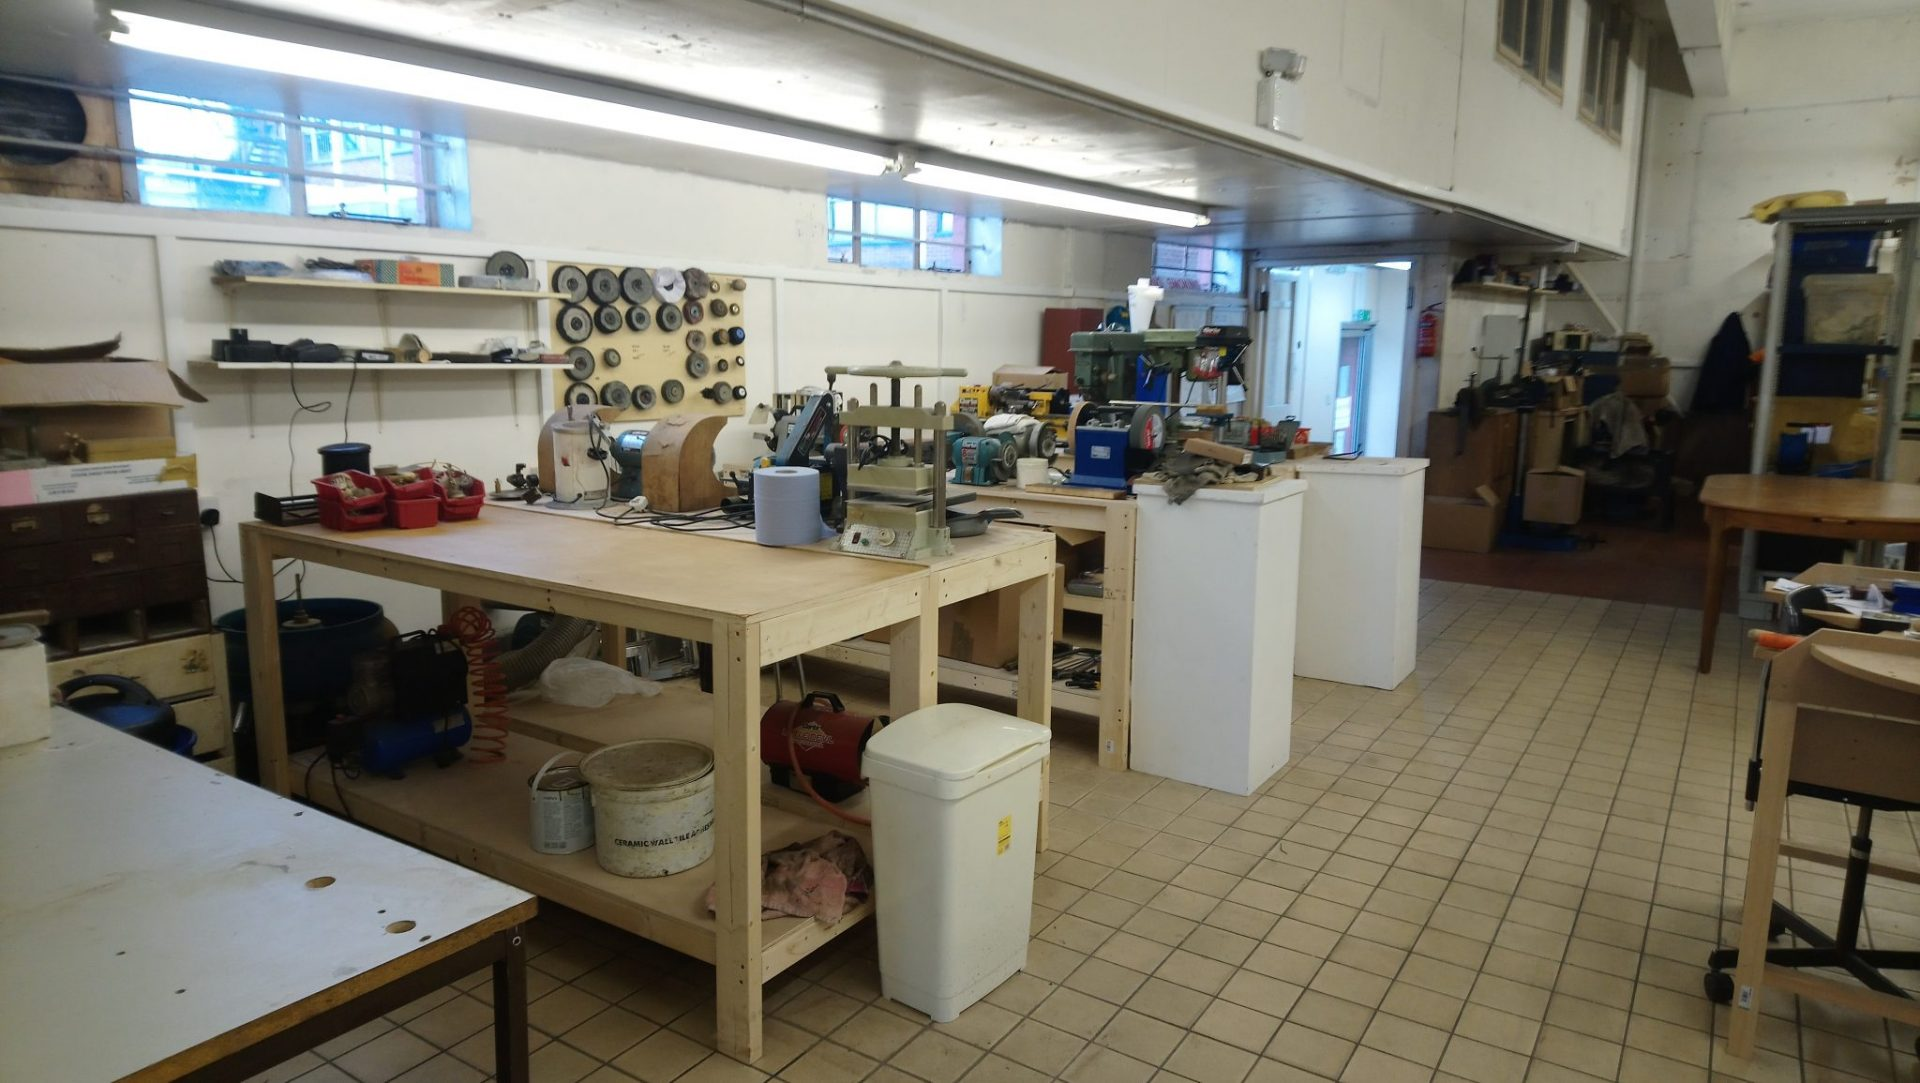 Metalwork and Craft Studio Craft, woodwork and Leatherwork space to rent in Leeds City Centre Are you looking for a space to run your Craft business ?